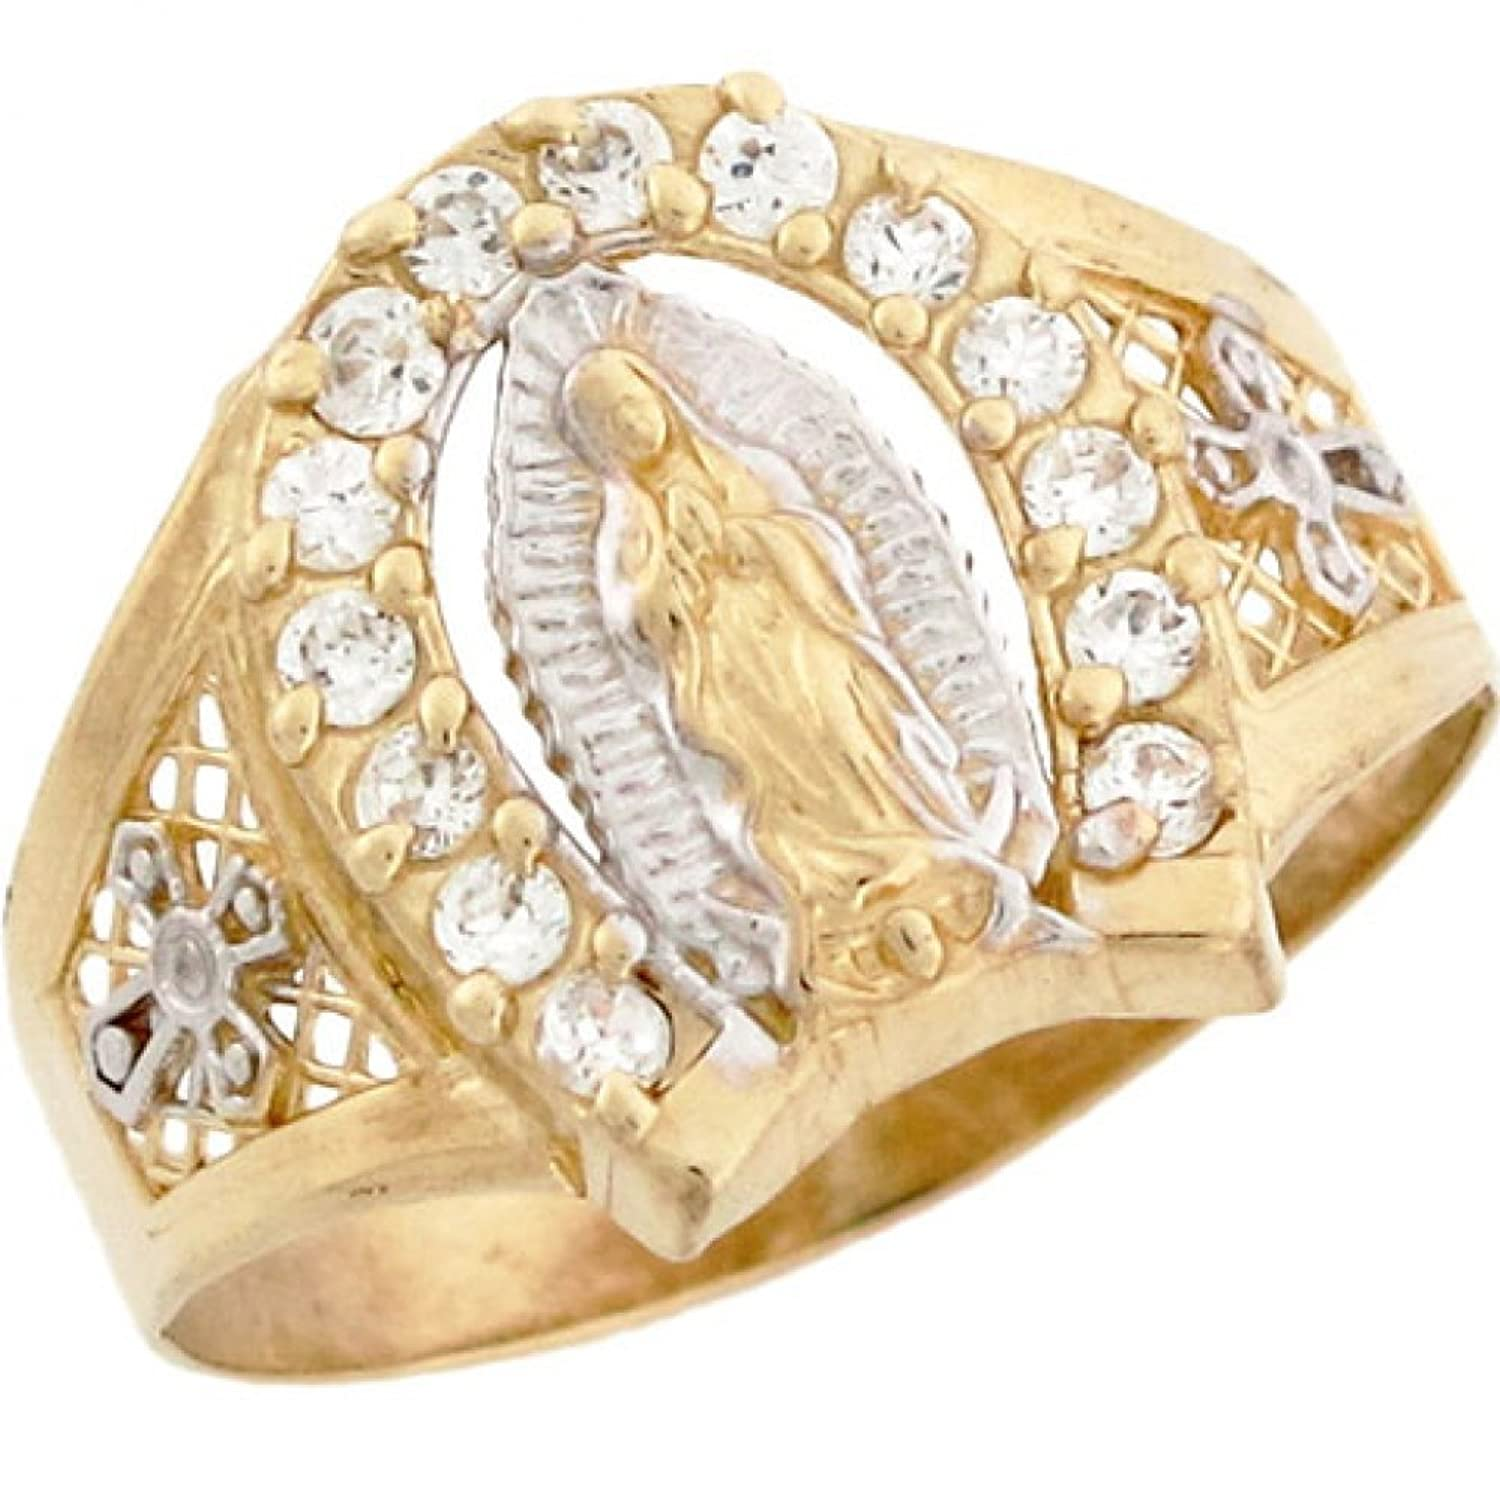 christian wedding bands of idea pinterest unique religious rings gold silver elegant